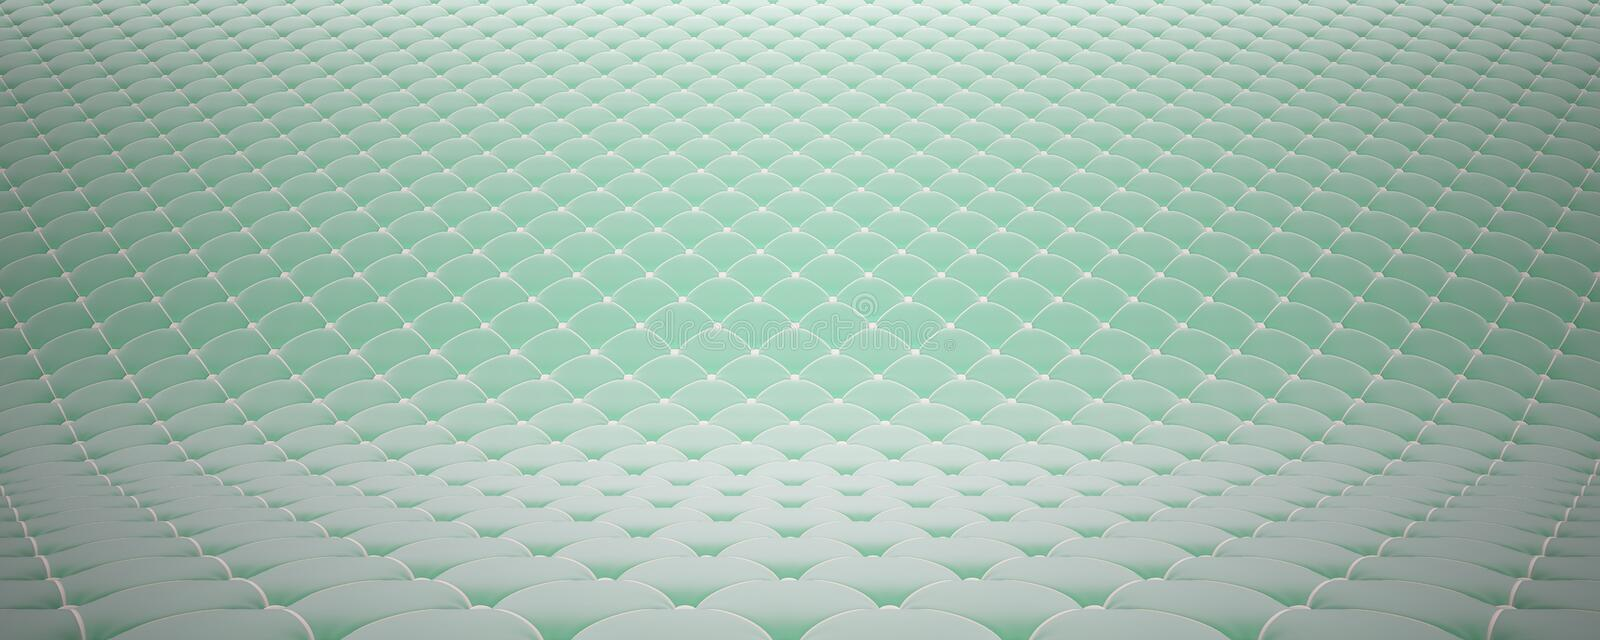 Quilted fabric surface. Turquoise velvet and white leather. Option 2 stock photo